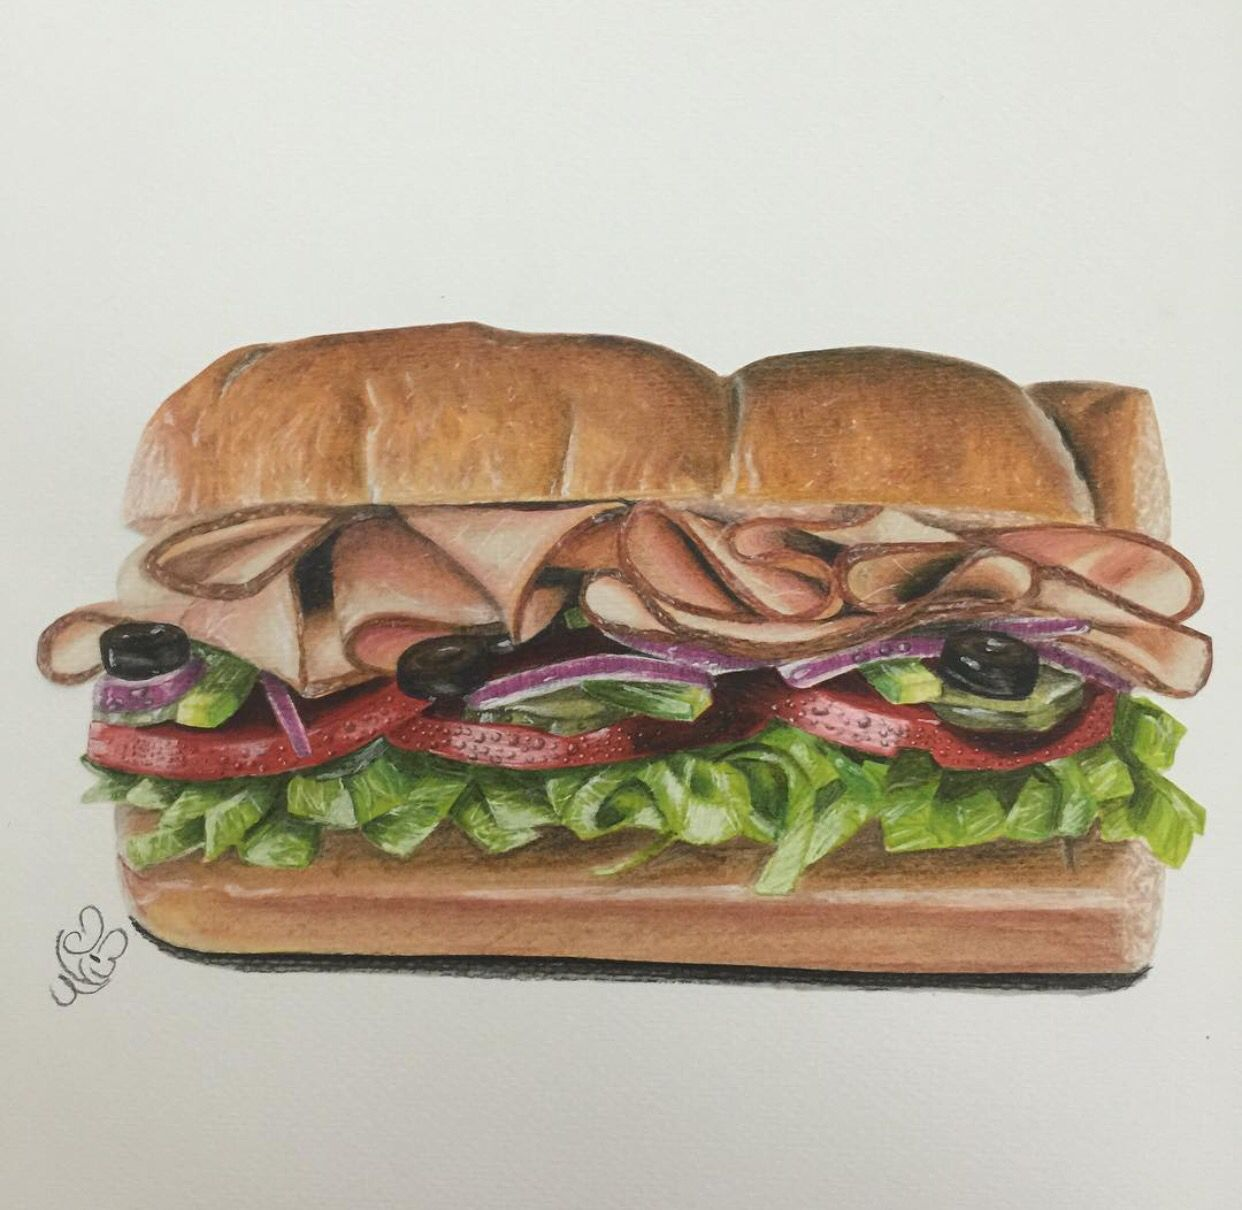 My Draw For Subway Sandwich Sandwich Drawing Watercolor Food Illustration Watercolor Food